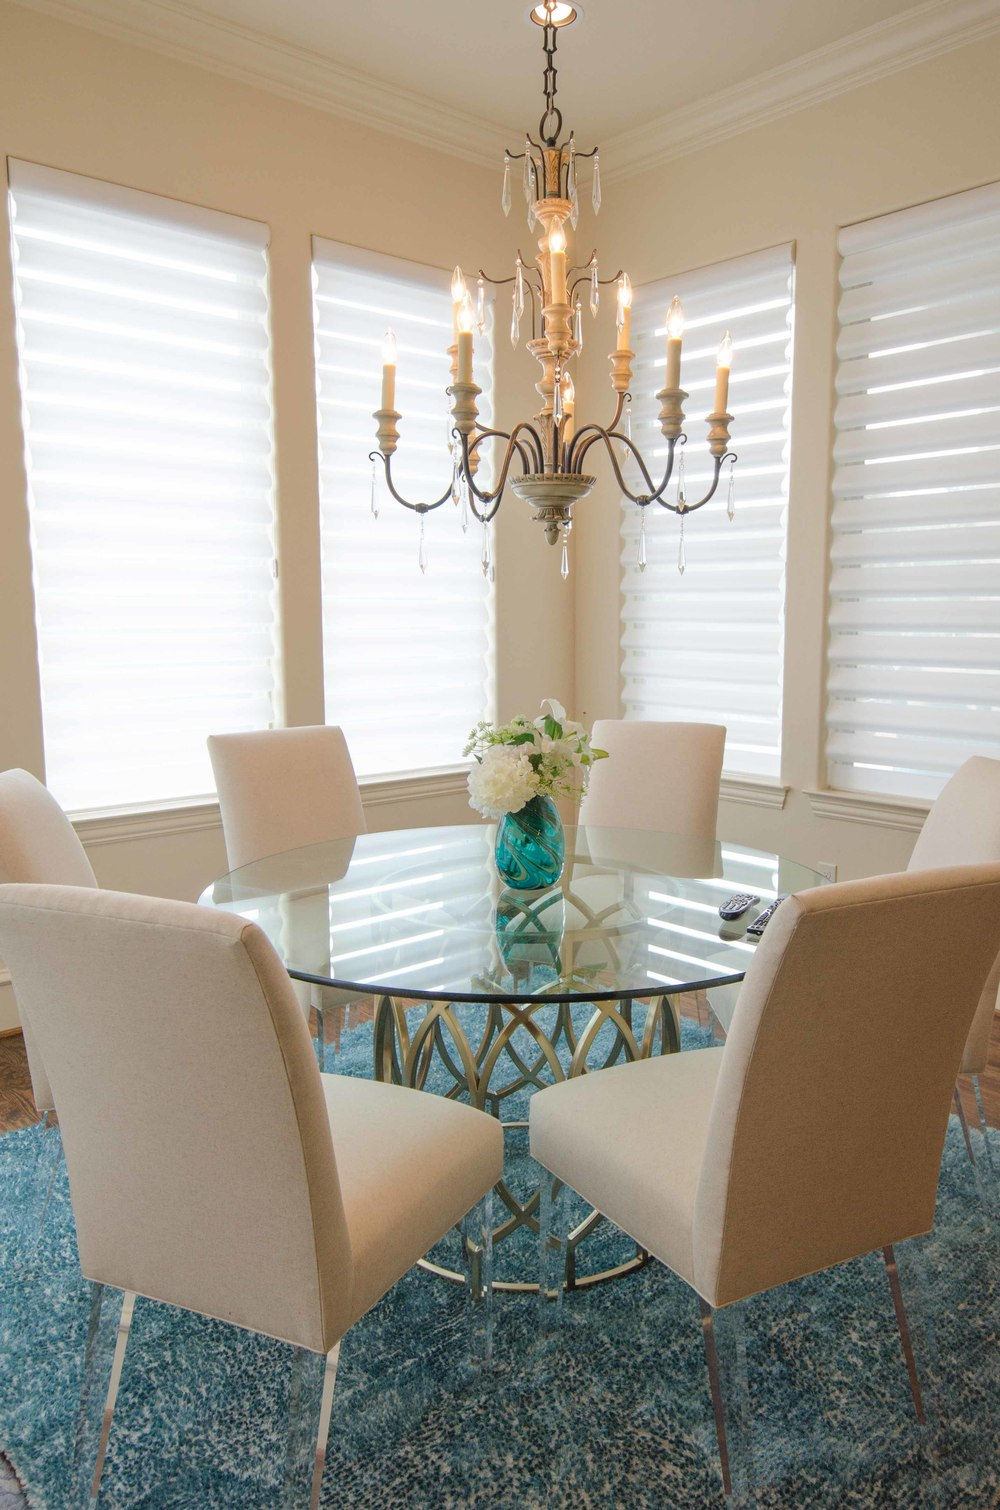 Transitional dining room with gold base and glass top table and chairs with lucite legs. Turquoise shag rug.